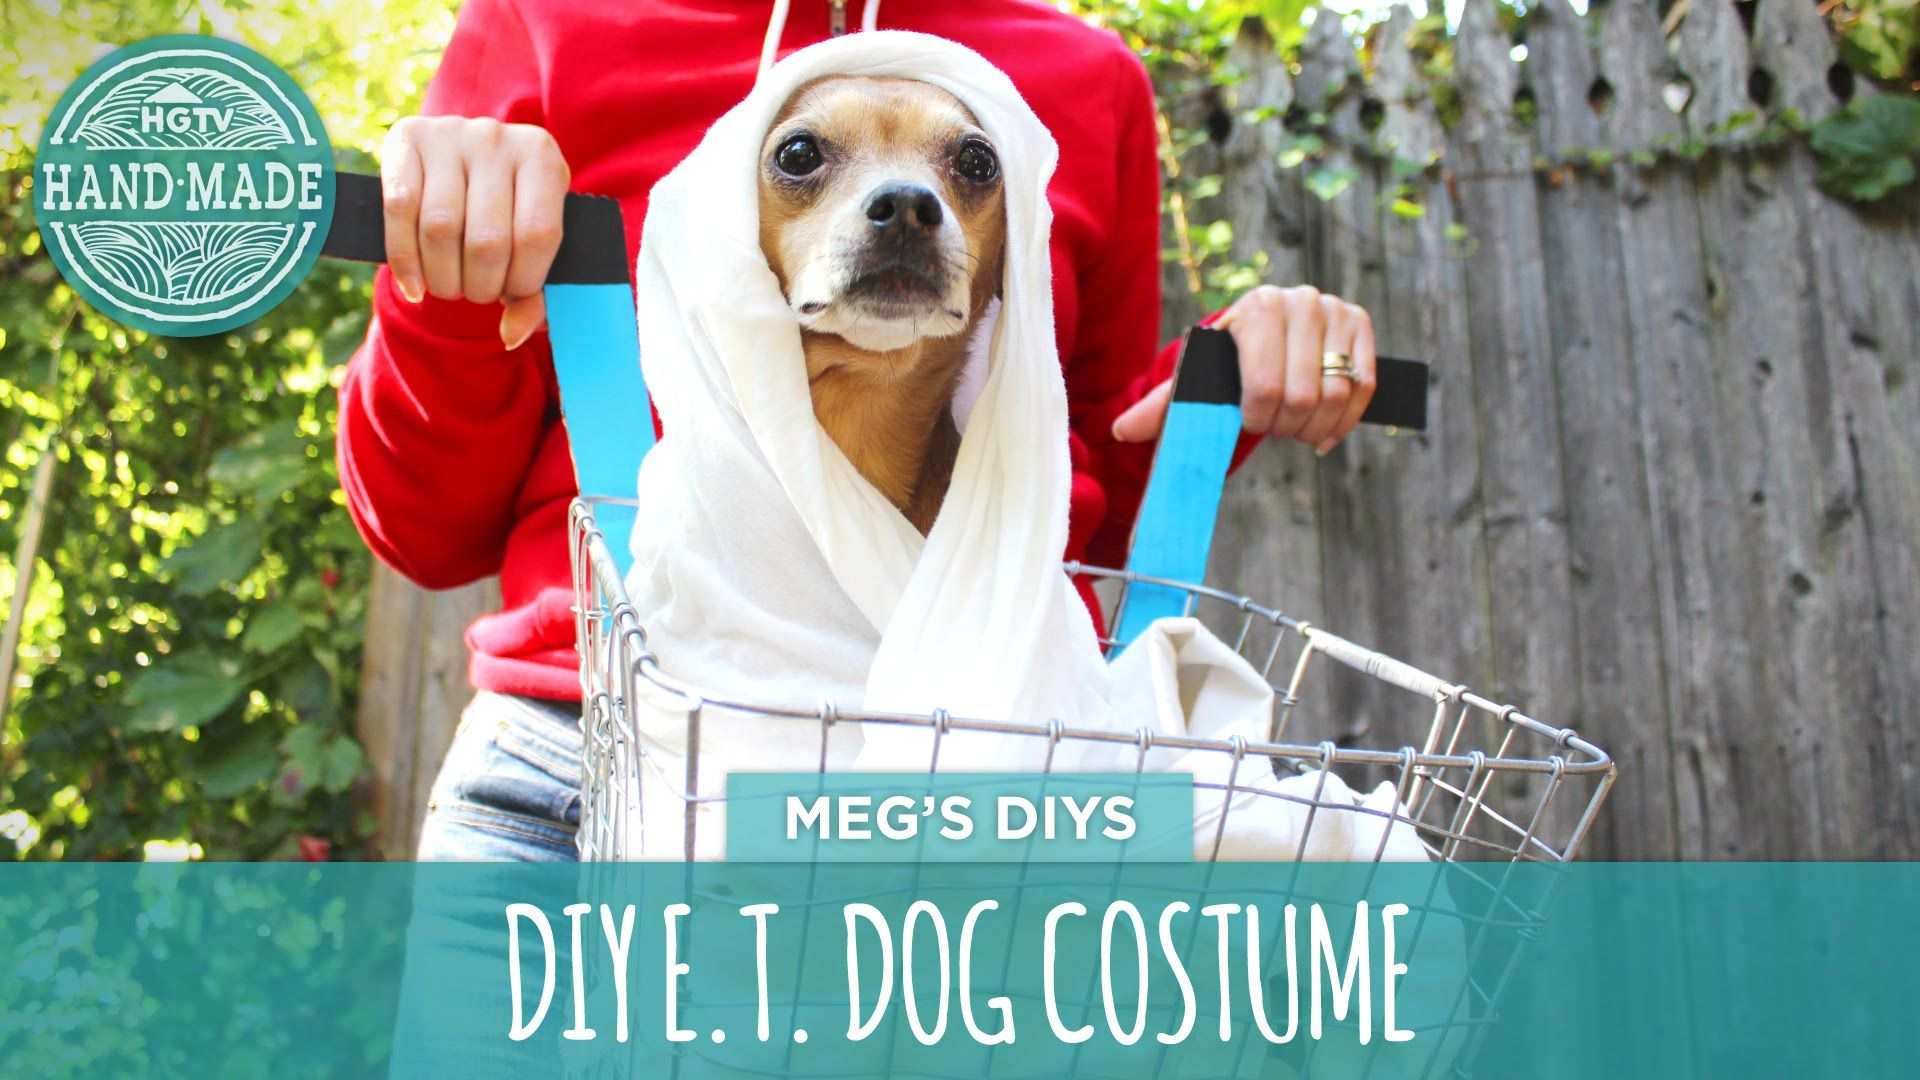 Diy et dog costume for a spooky good time pinterest costumes diy et dog costume solutioingenieria Choice Image